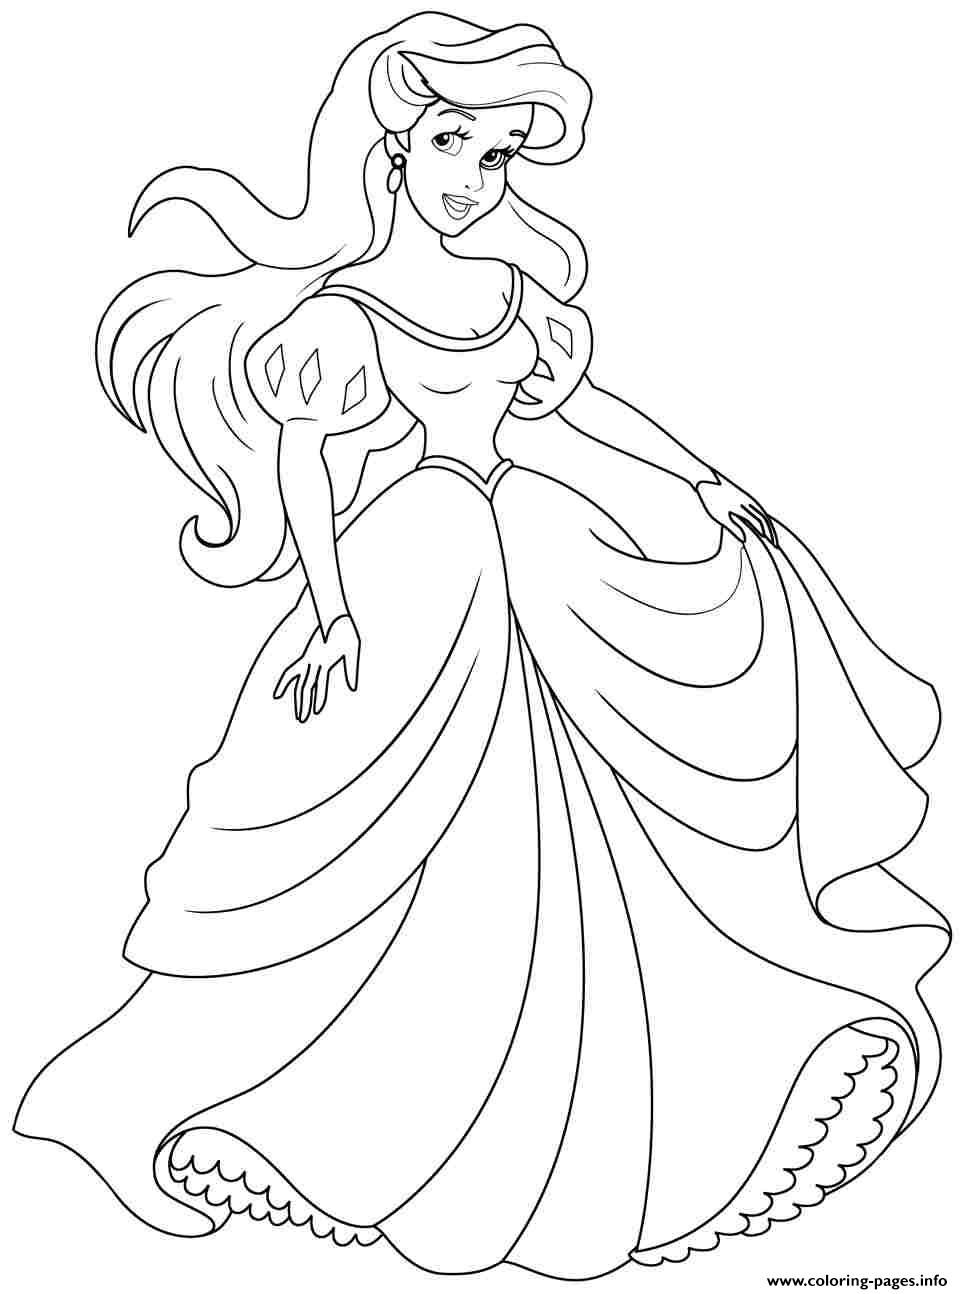 princess ariel human coloring pages printable and coloring book to print for free find more coloring pages online for kids and adults of princess ariel - Princess Coloring Pages Online